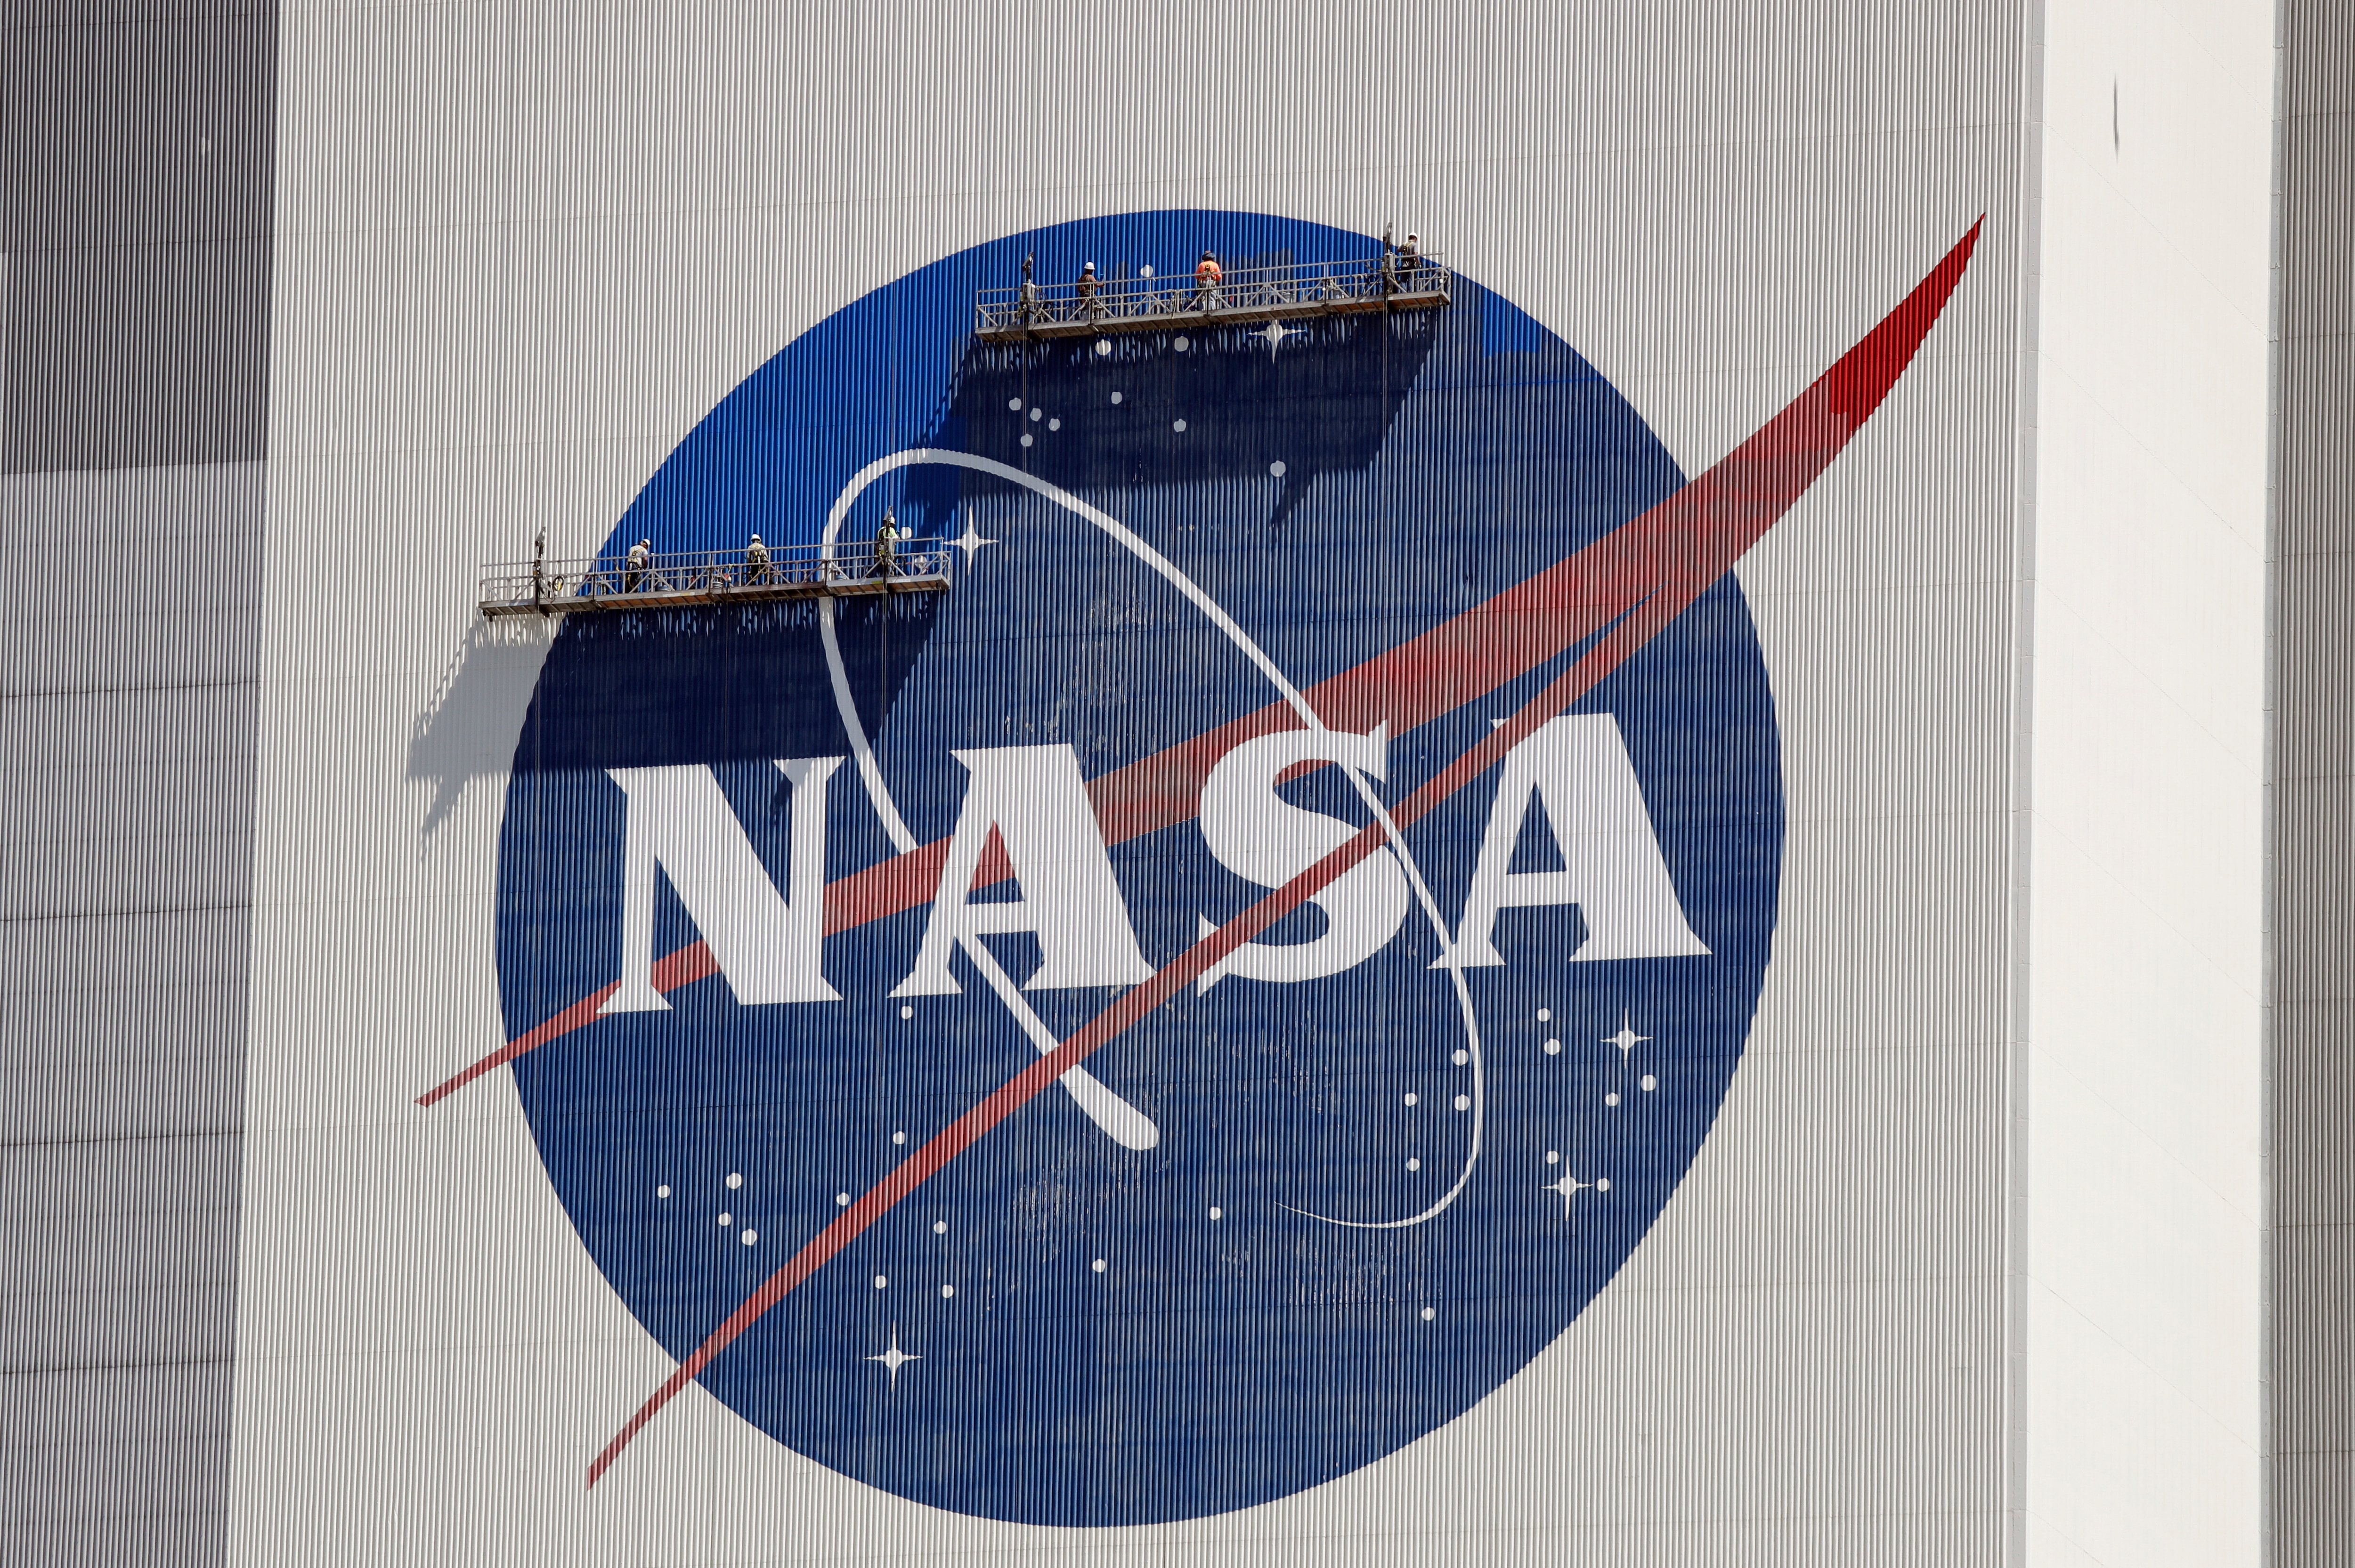 NASA says mystery object is 54-year-old rocket, not asteroid